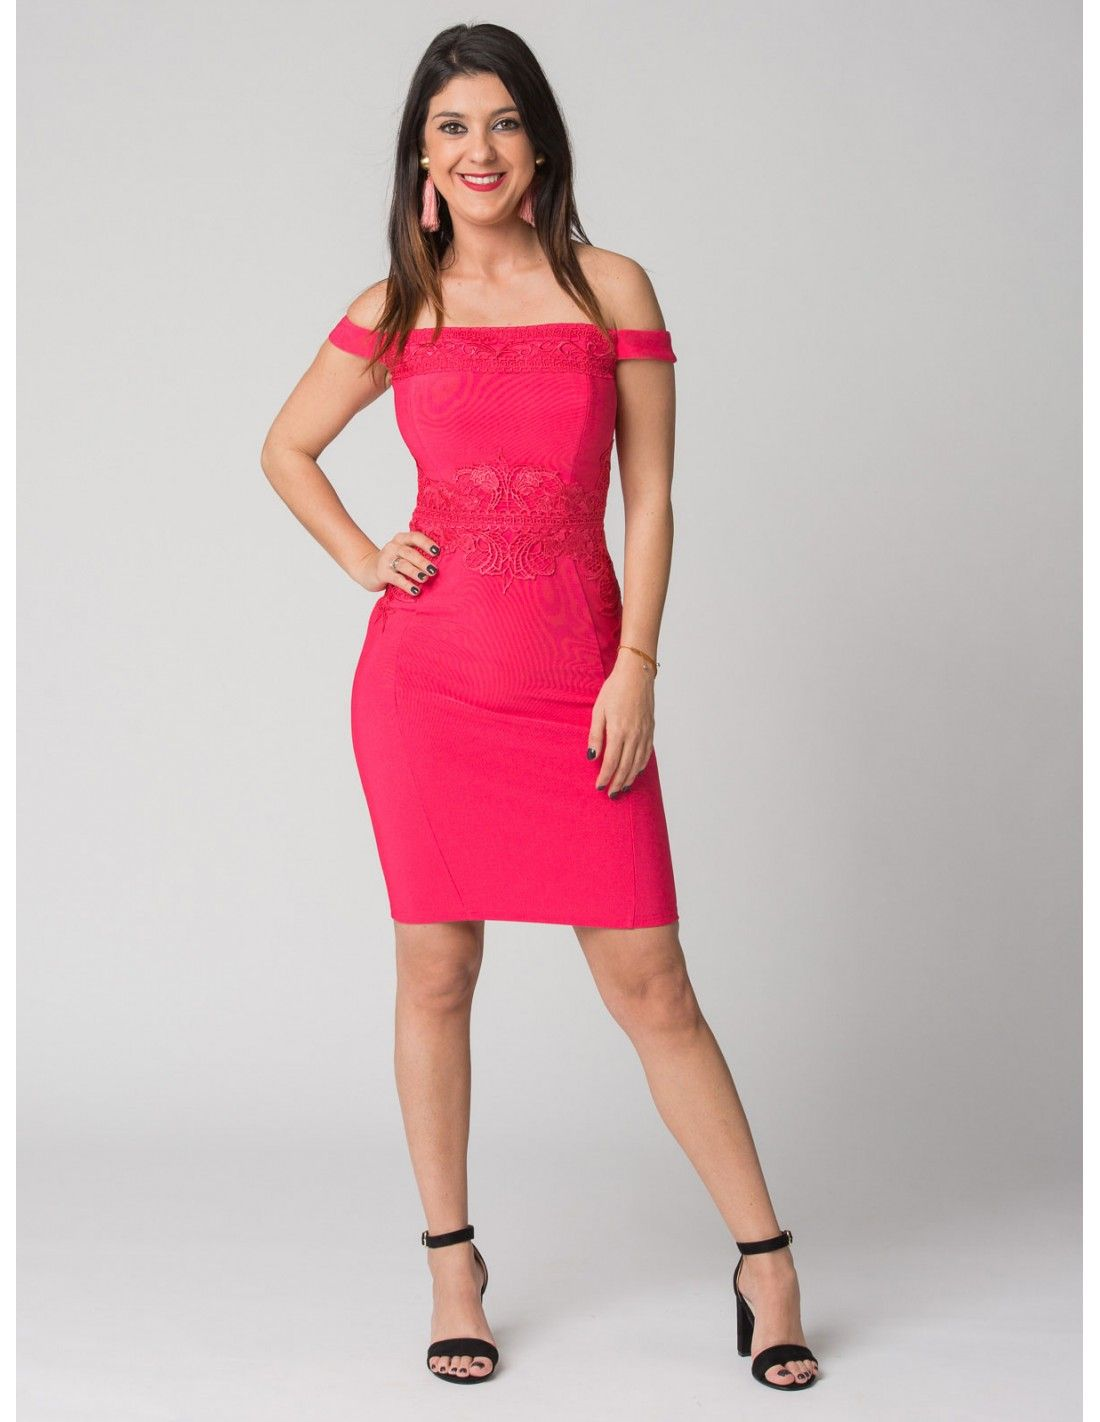 21be4ea5b Vestido Preston  Lipsy London - Vestido de tubo tipo faja en color fucsia.  Escote